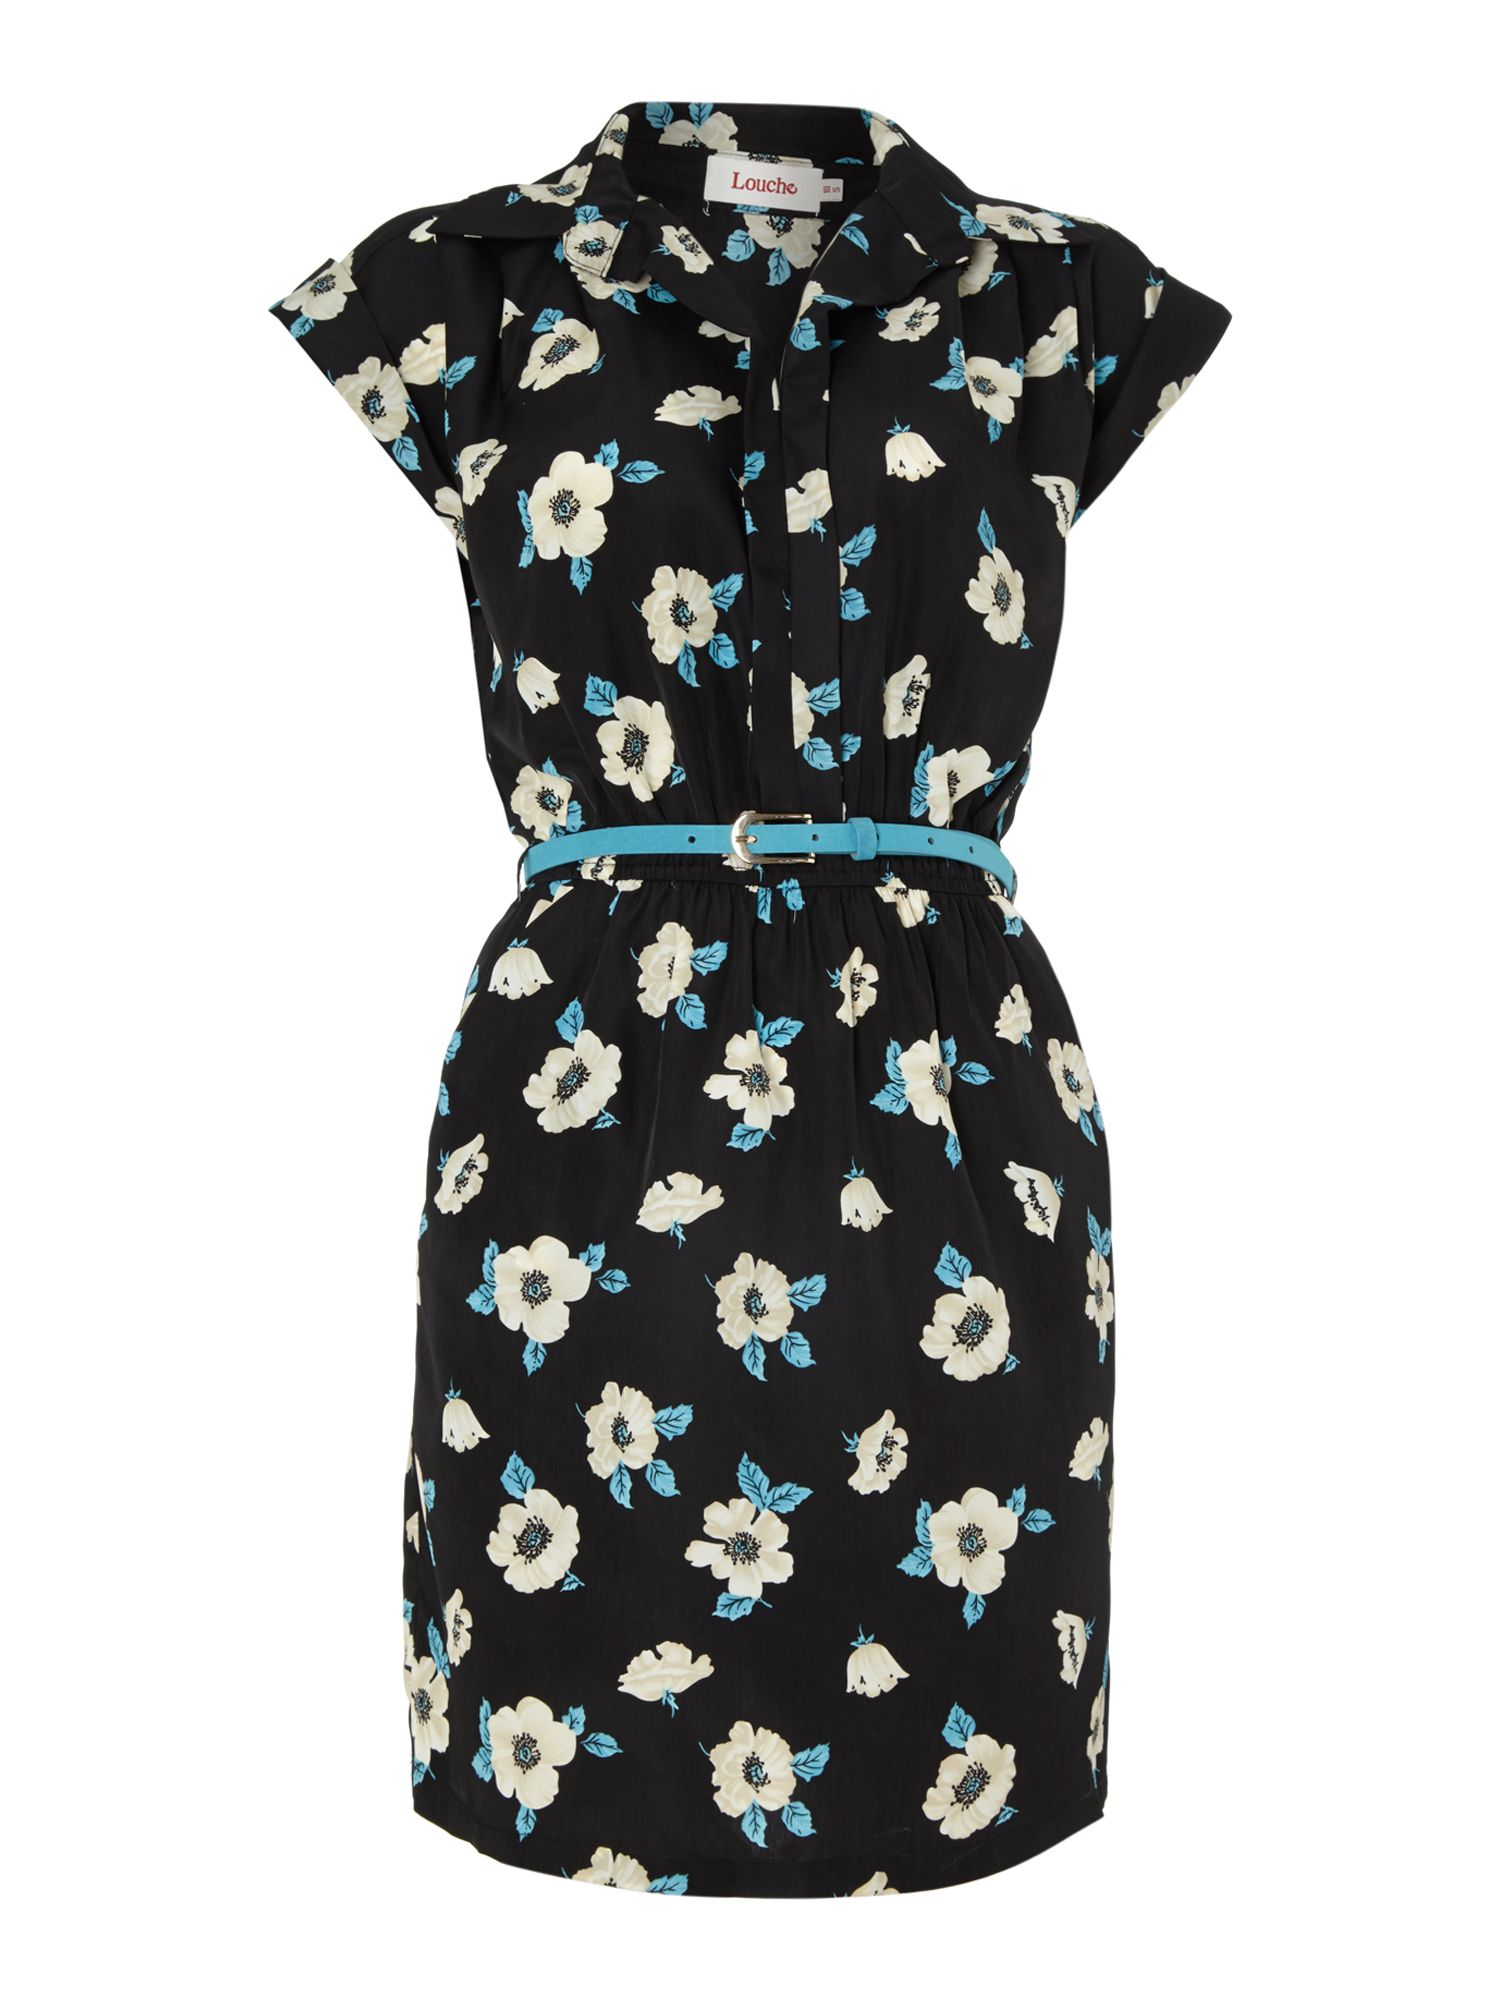 V neck poppy print dress